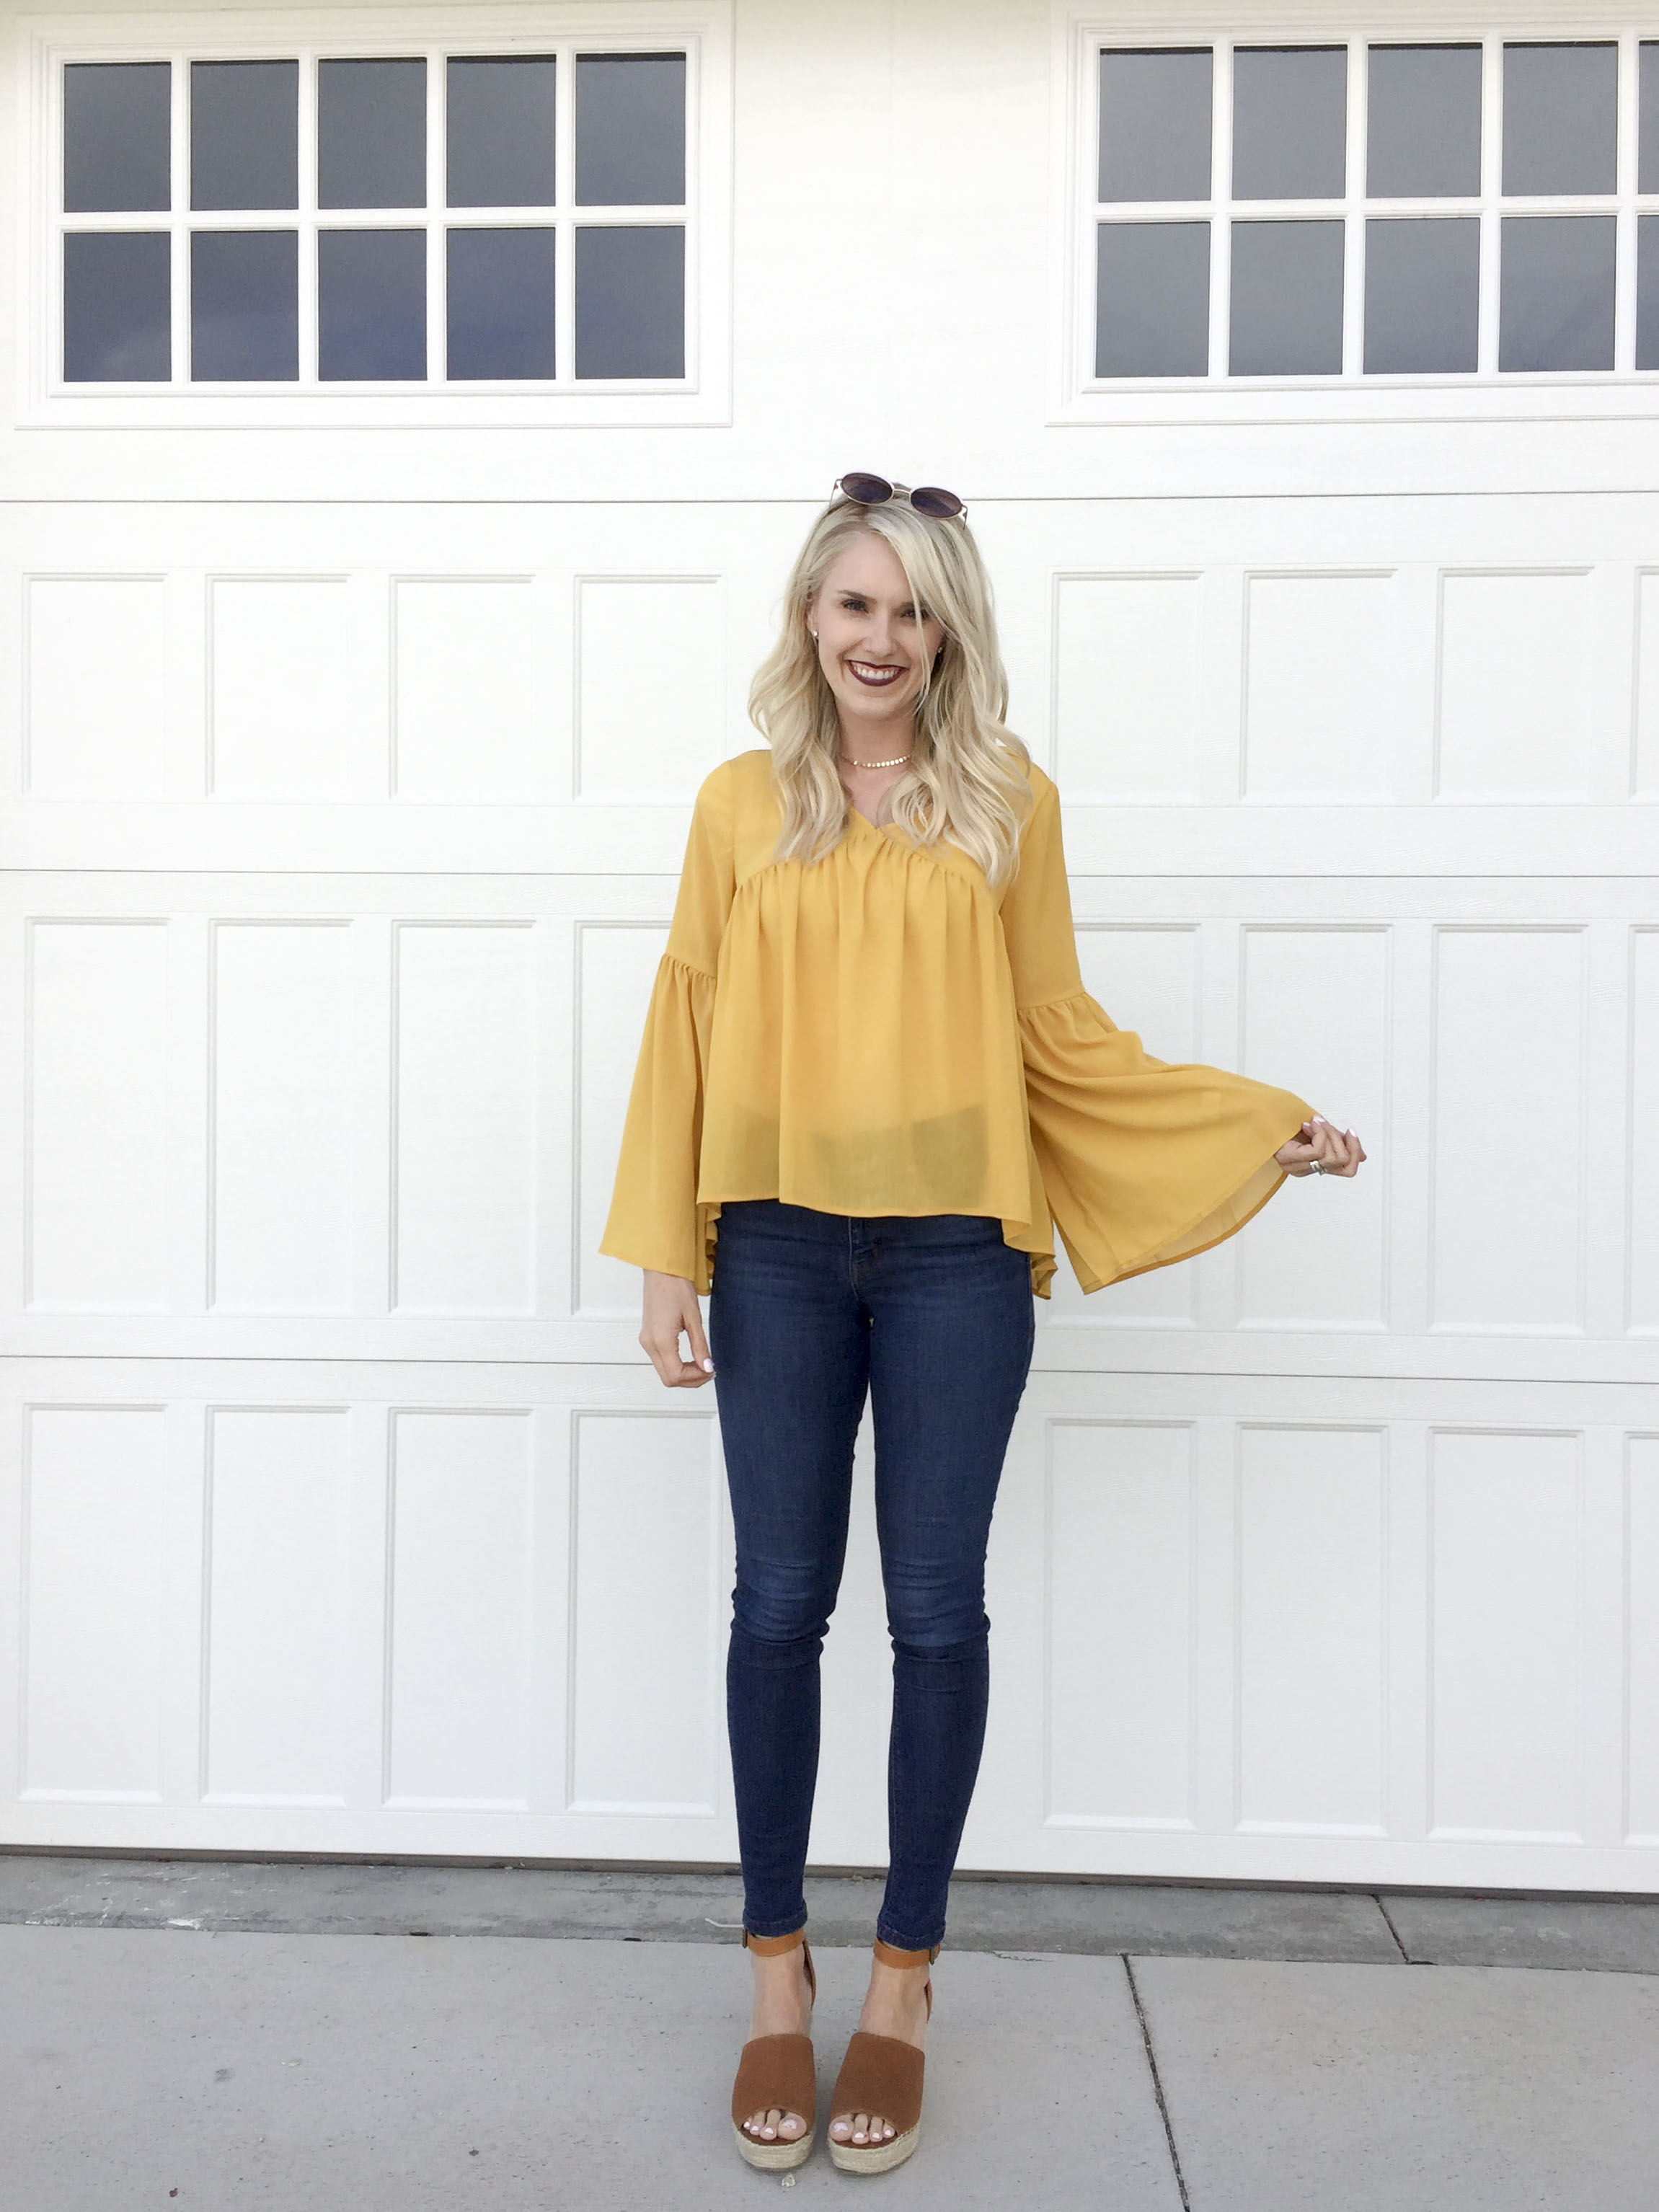 Cute Spring Top + Tiny Tags Deal!